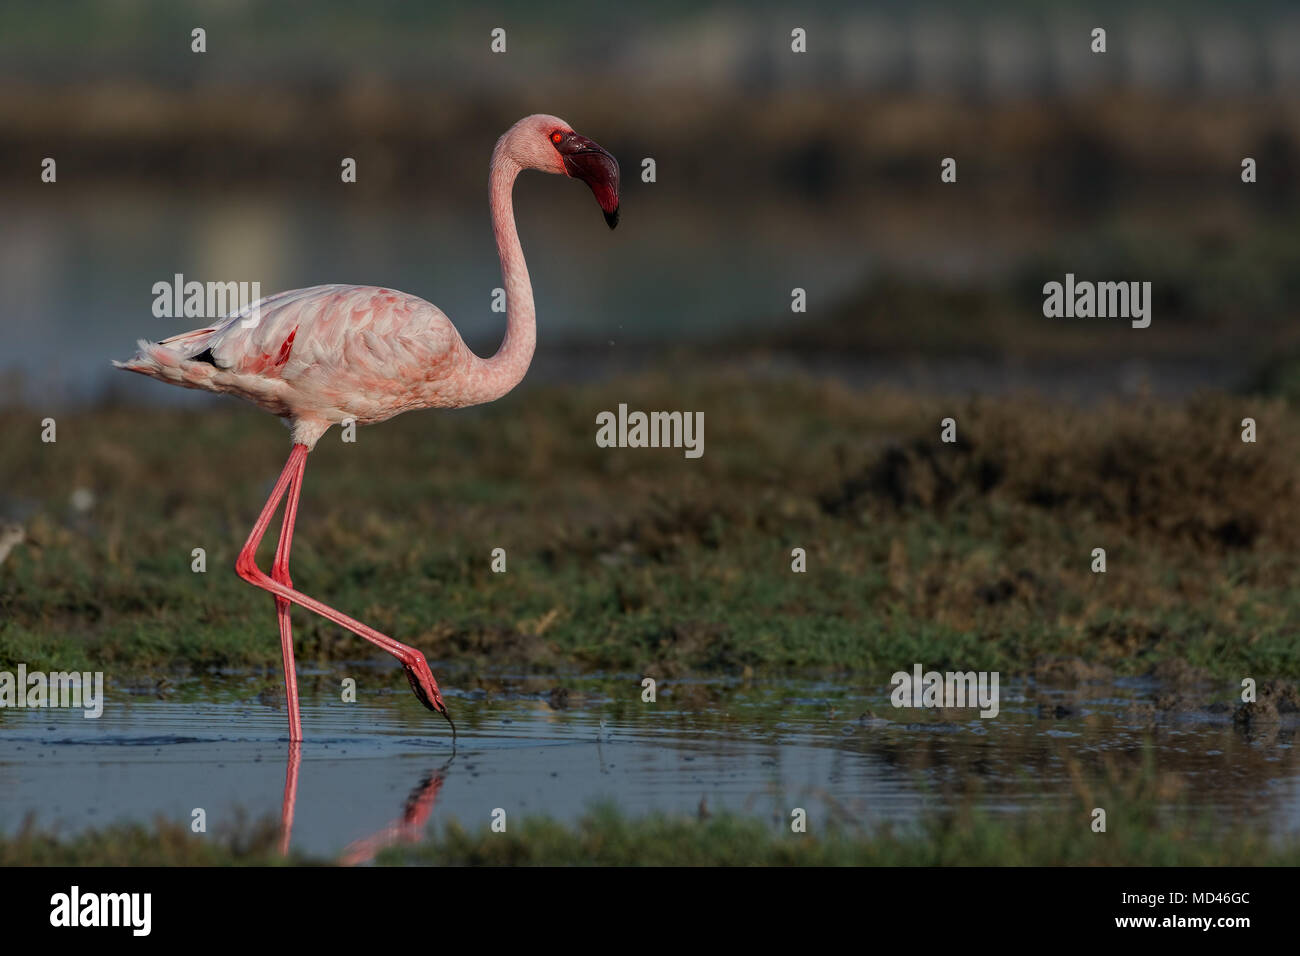 Lesser Flamingo (Phoenicoparrus minor). - Stock Image